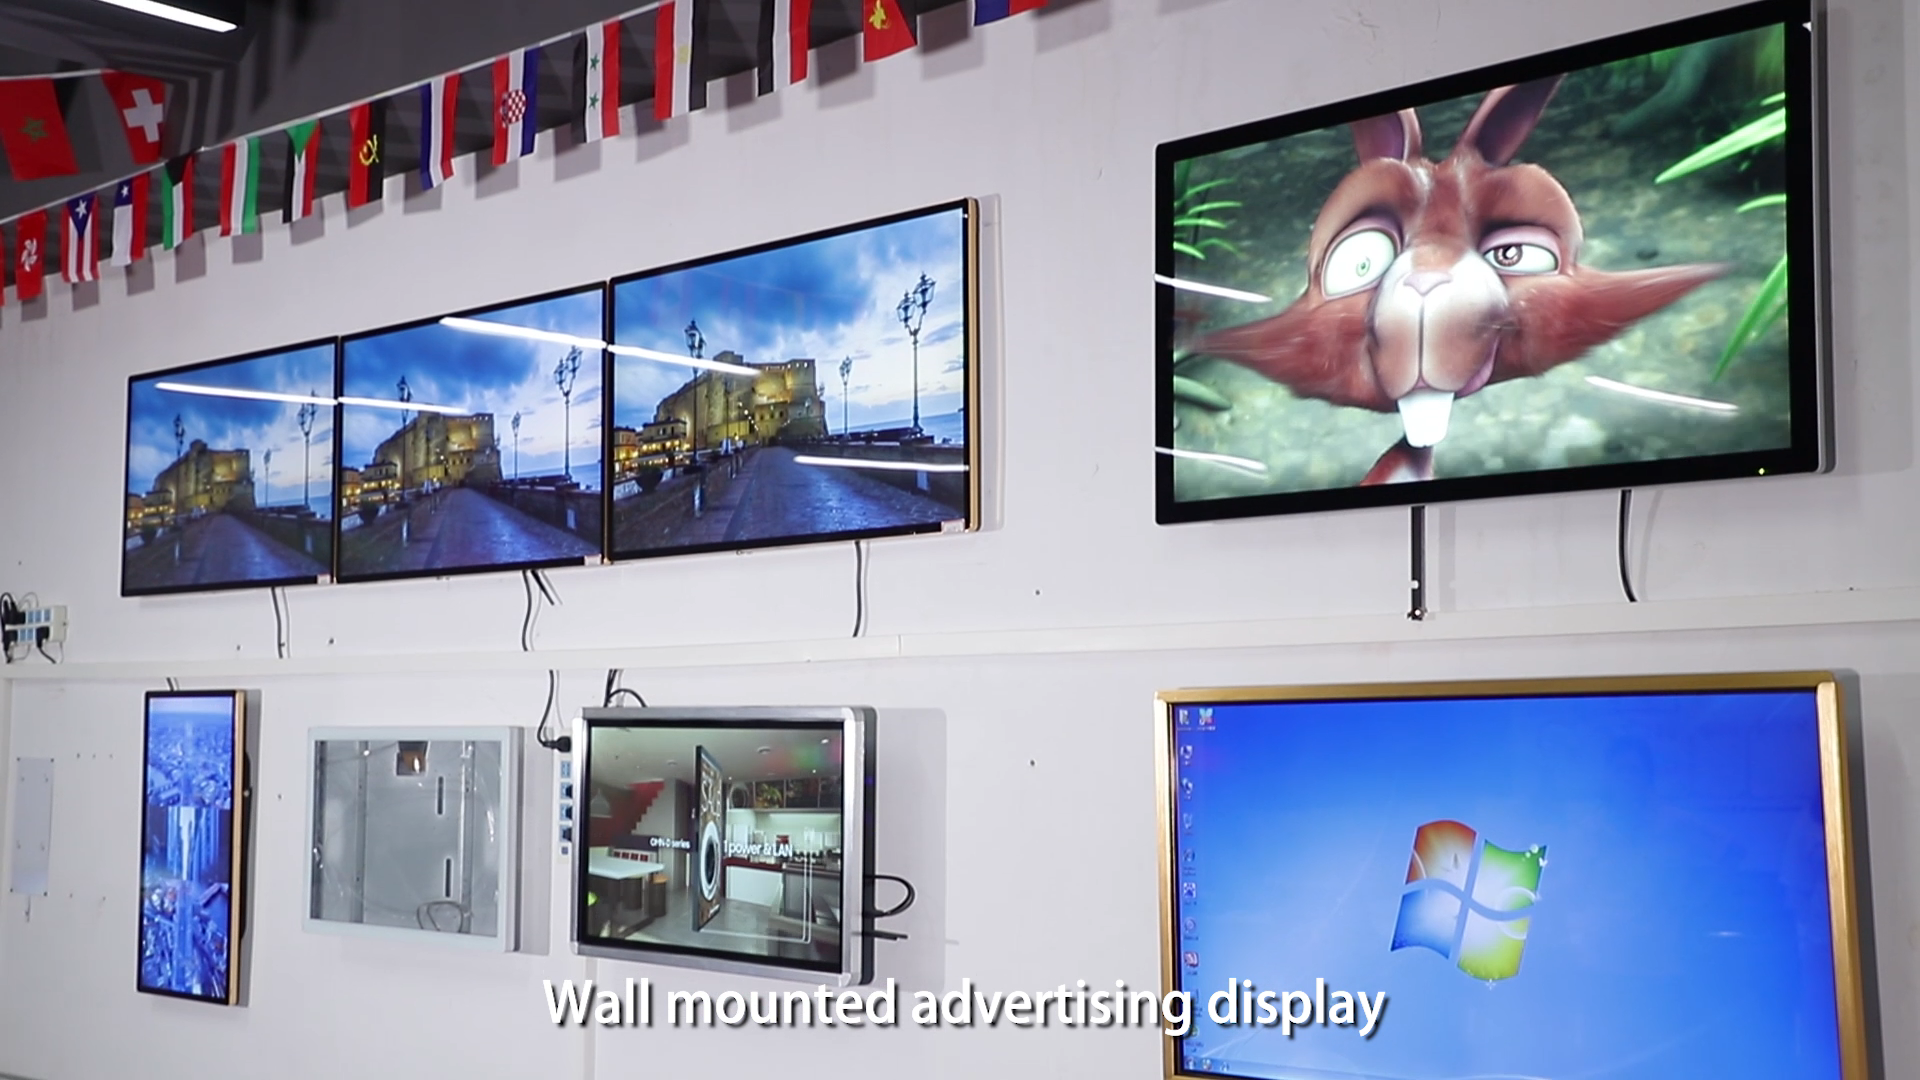 7 to 32 inch lcd wall mounted digital small advertising player indoor advertising signage monitor screen for advertising